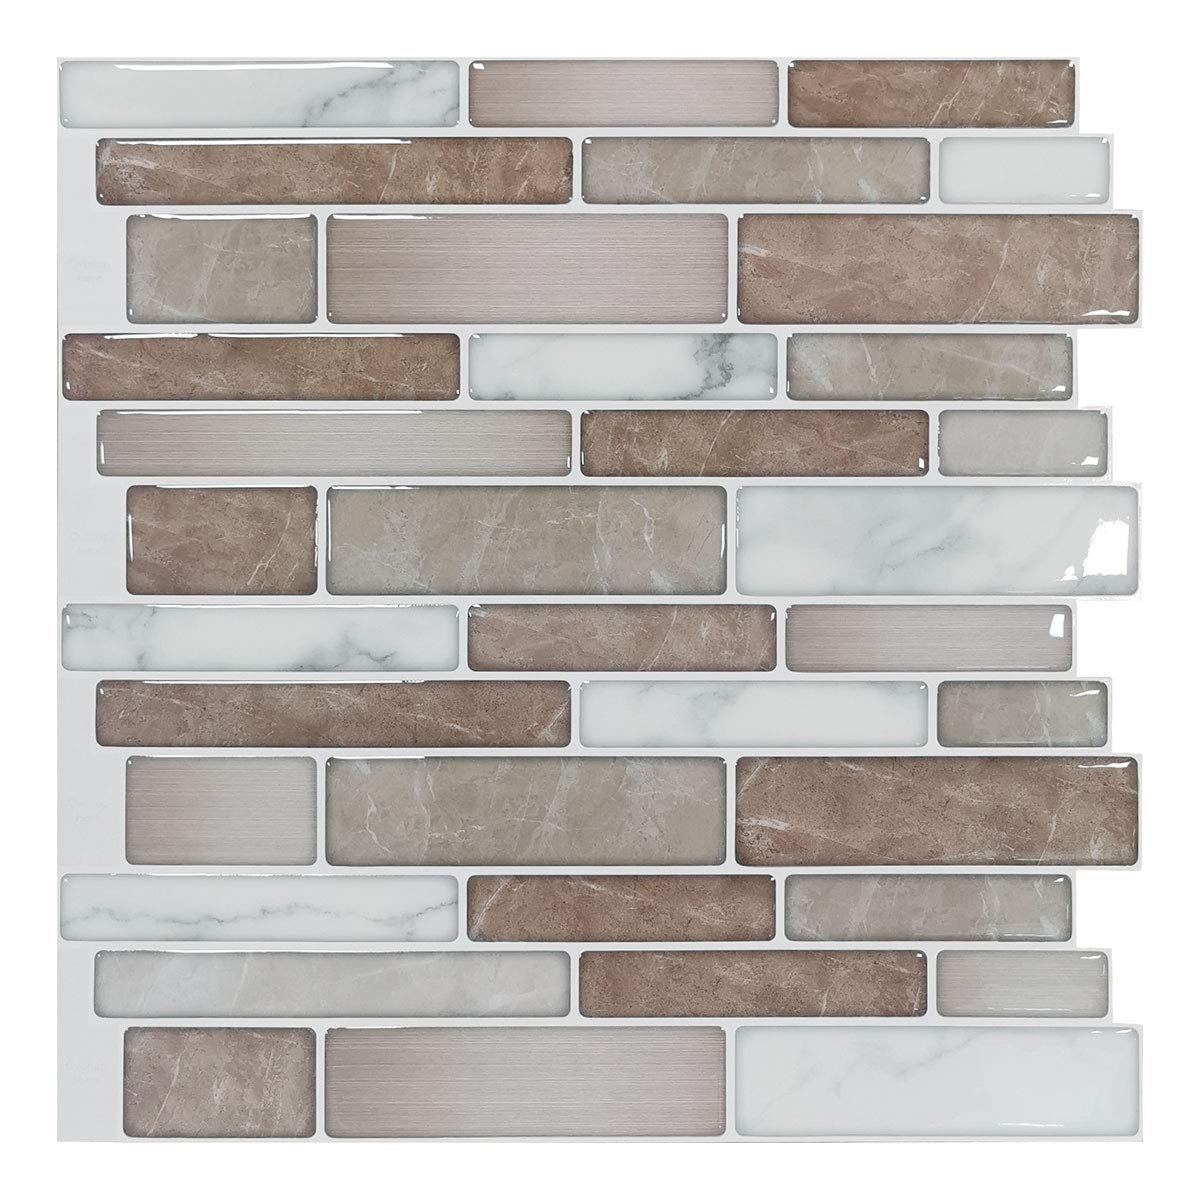 Art3d 10-Sheet Premium Stick On Kitchen Backsplash Tiles, 12''x12'' Peel and Stick Self Adhesive Bathroom 3D Wall Sticker by Art3d